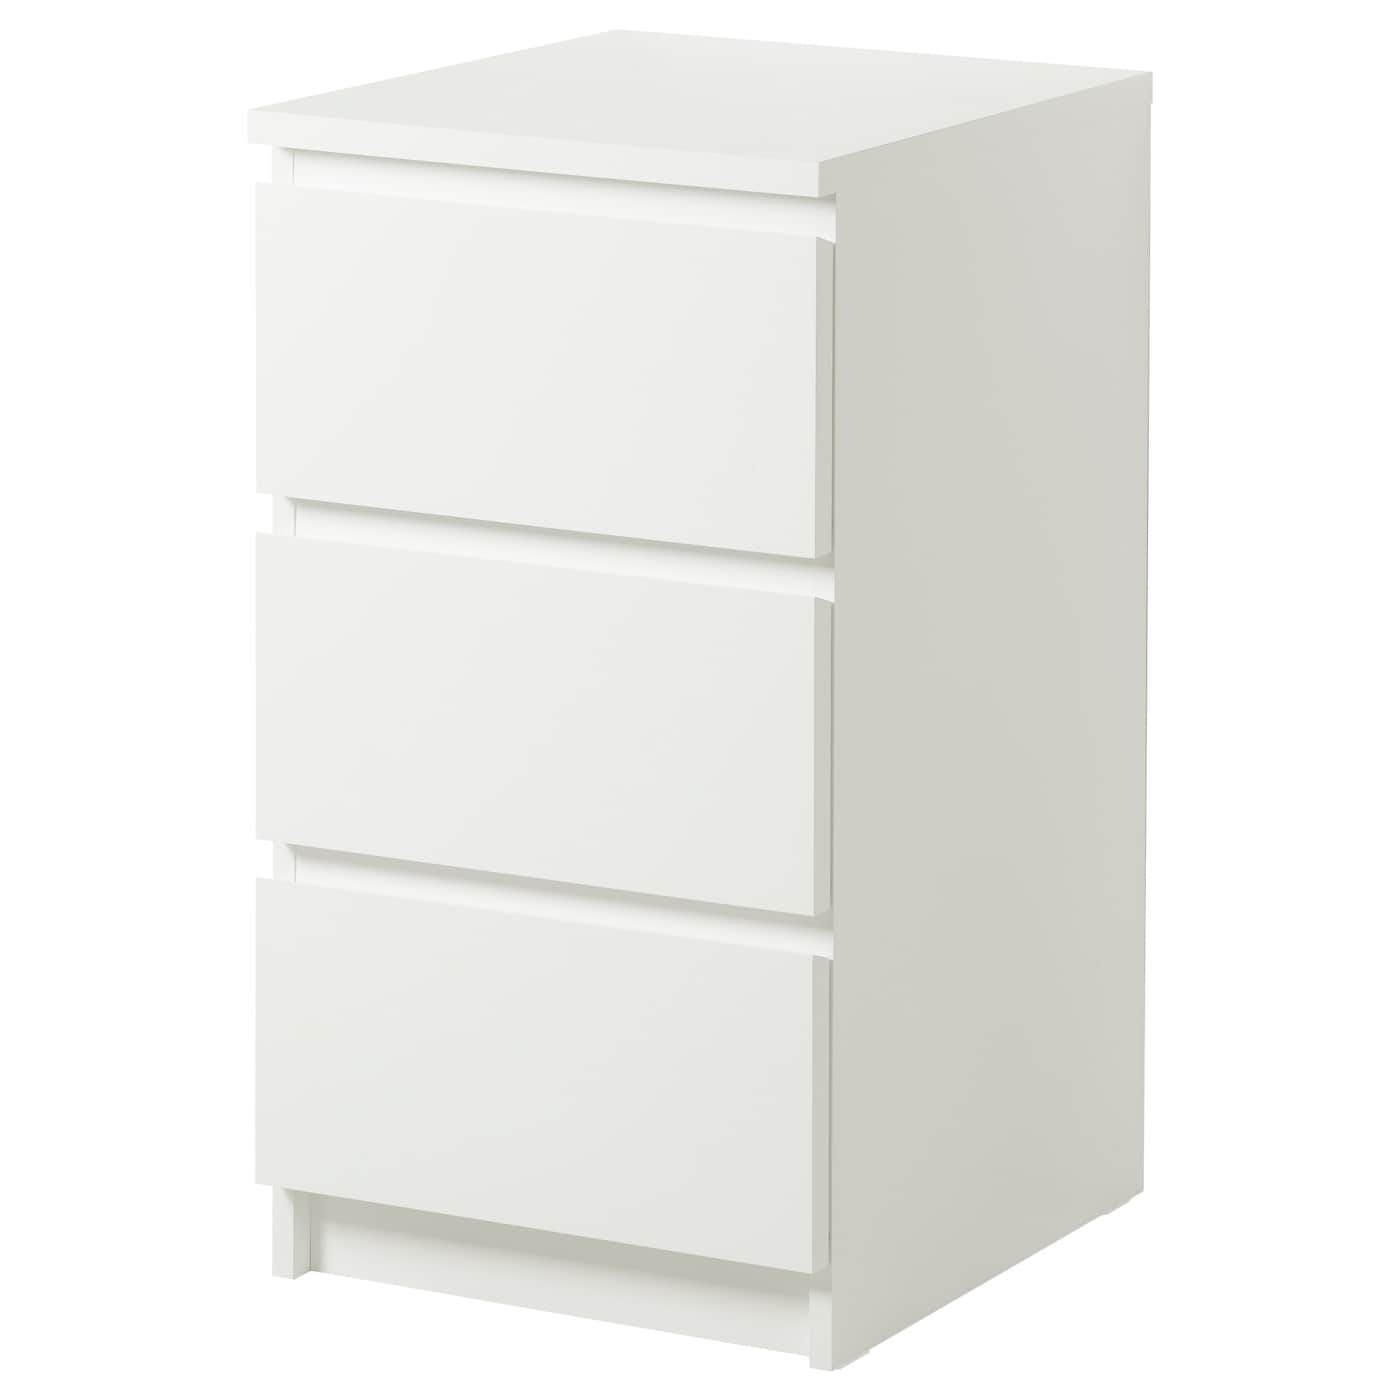 Malm chest of 3 drawers white 40x78 cm ikea for Schrank 30 cm breit 60 cm tief